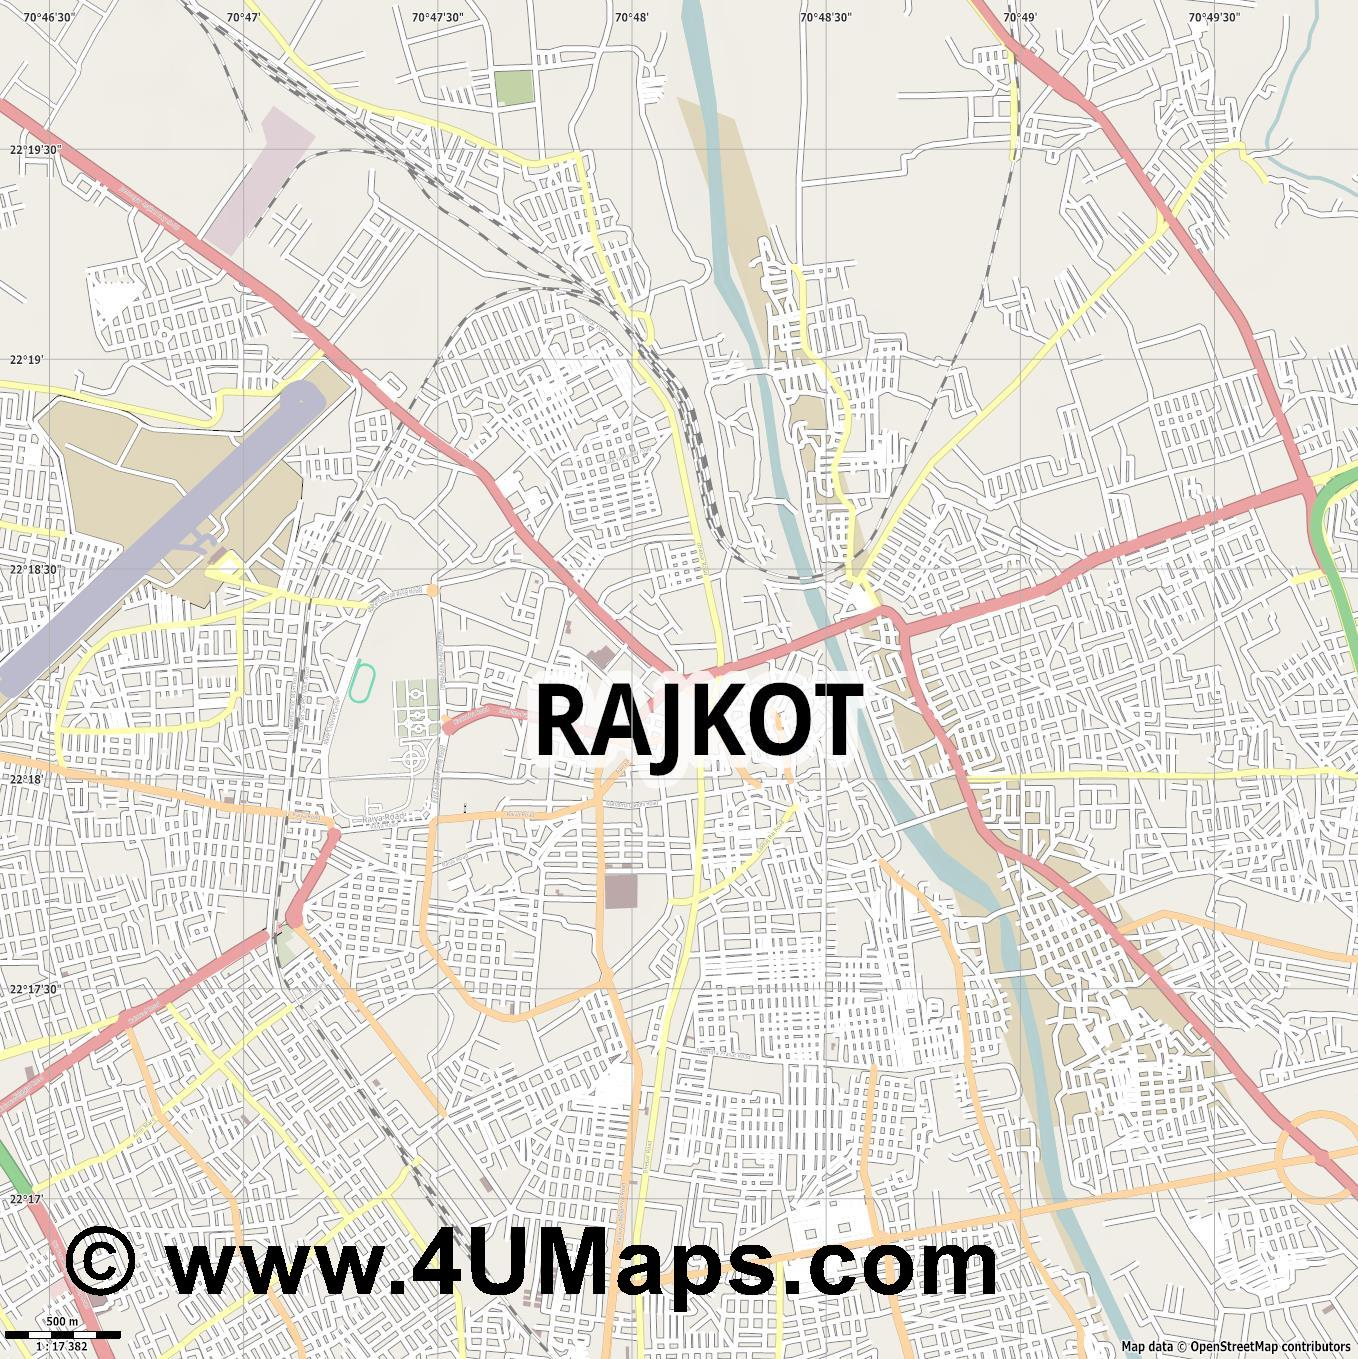 Rajkot  jpg ultra high detail preview vector city map